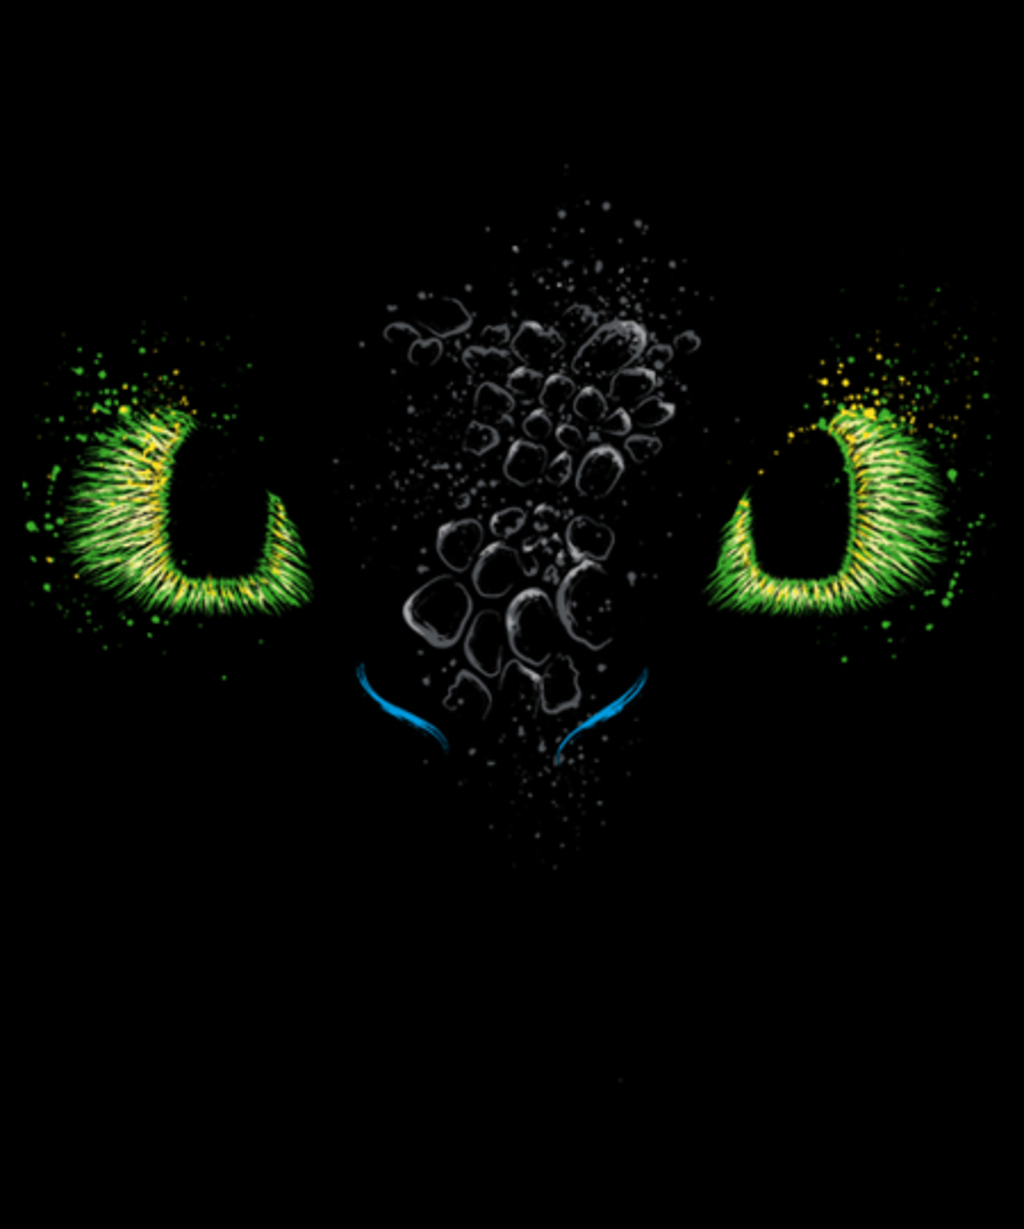 Qwertee: The Eyes of the Dragon